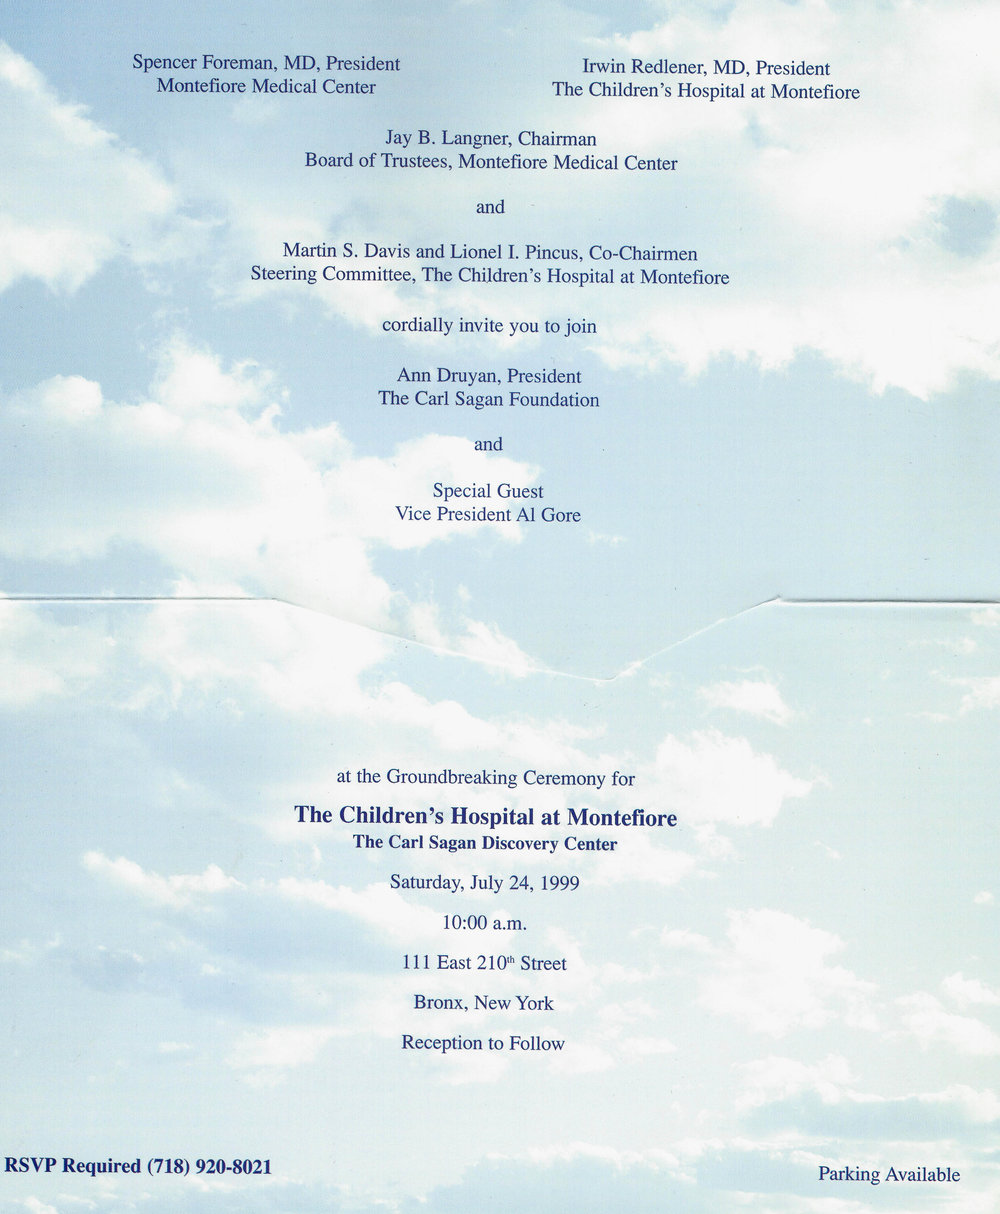 Invitation to the Ground Breaking of the new Children's Hospital at Montefiore, July 24, 1999